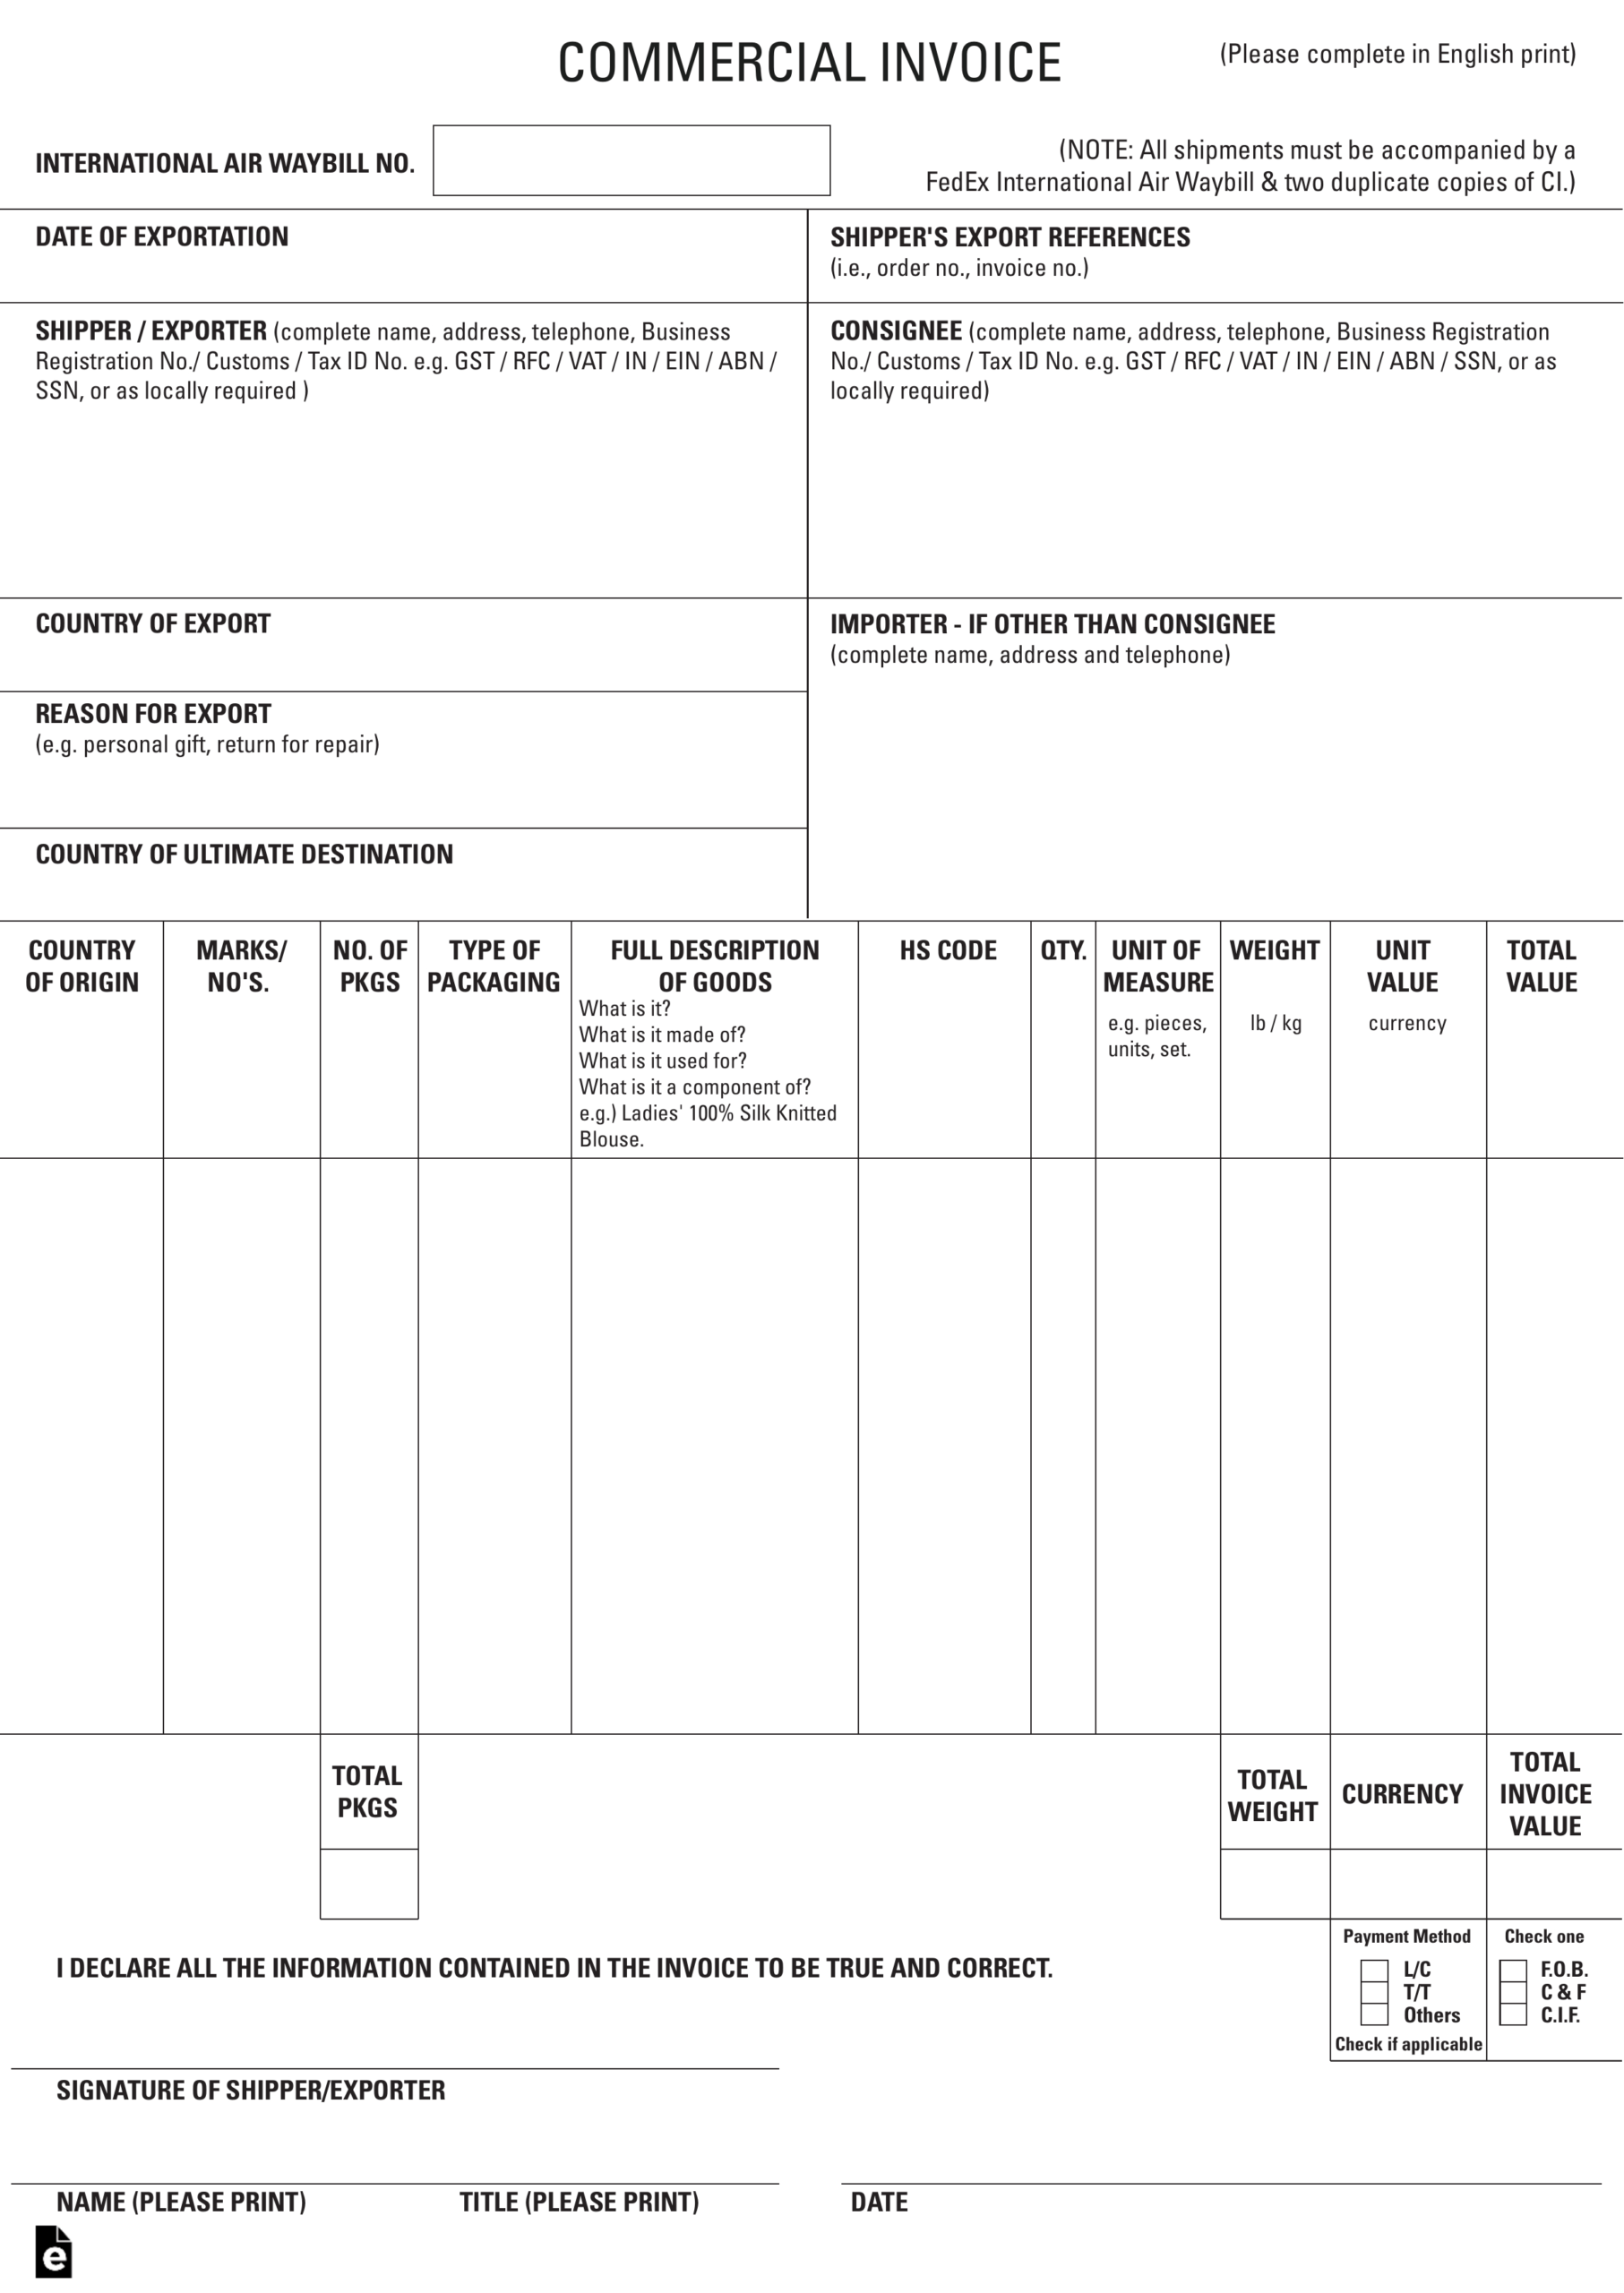 027 Ups Commercial Invoice Form Pdf Example Forms Canada With Regard To Commercial Invoice Template Word Doc